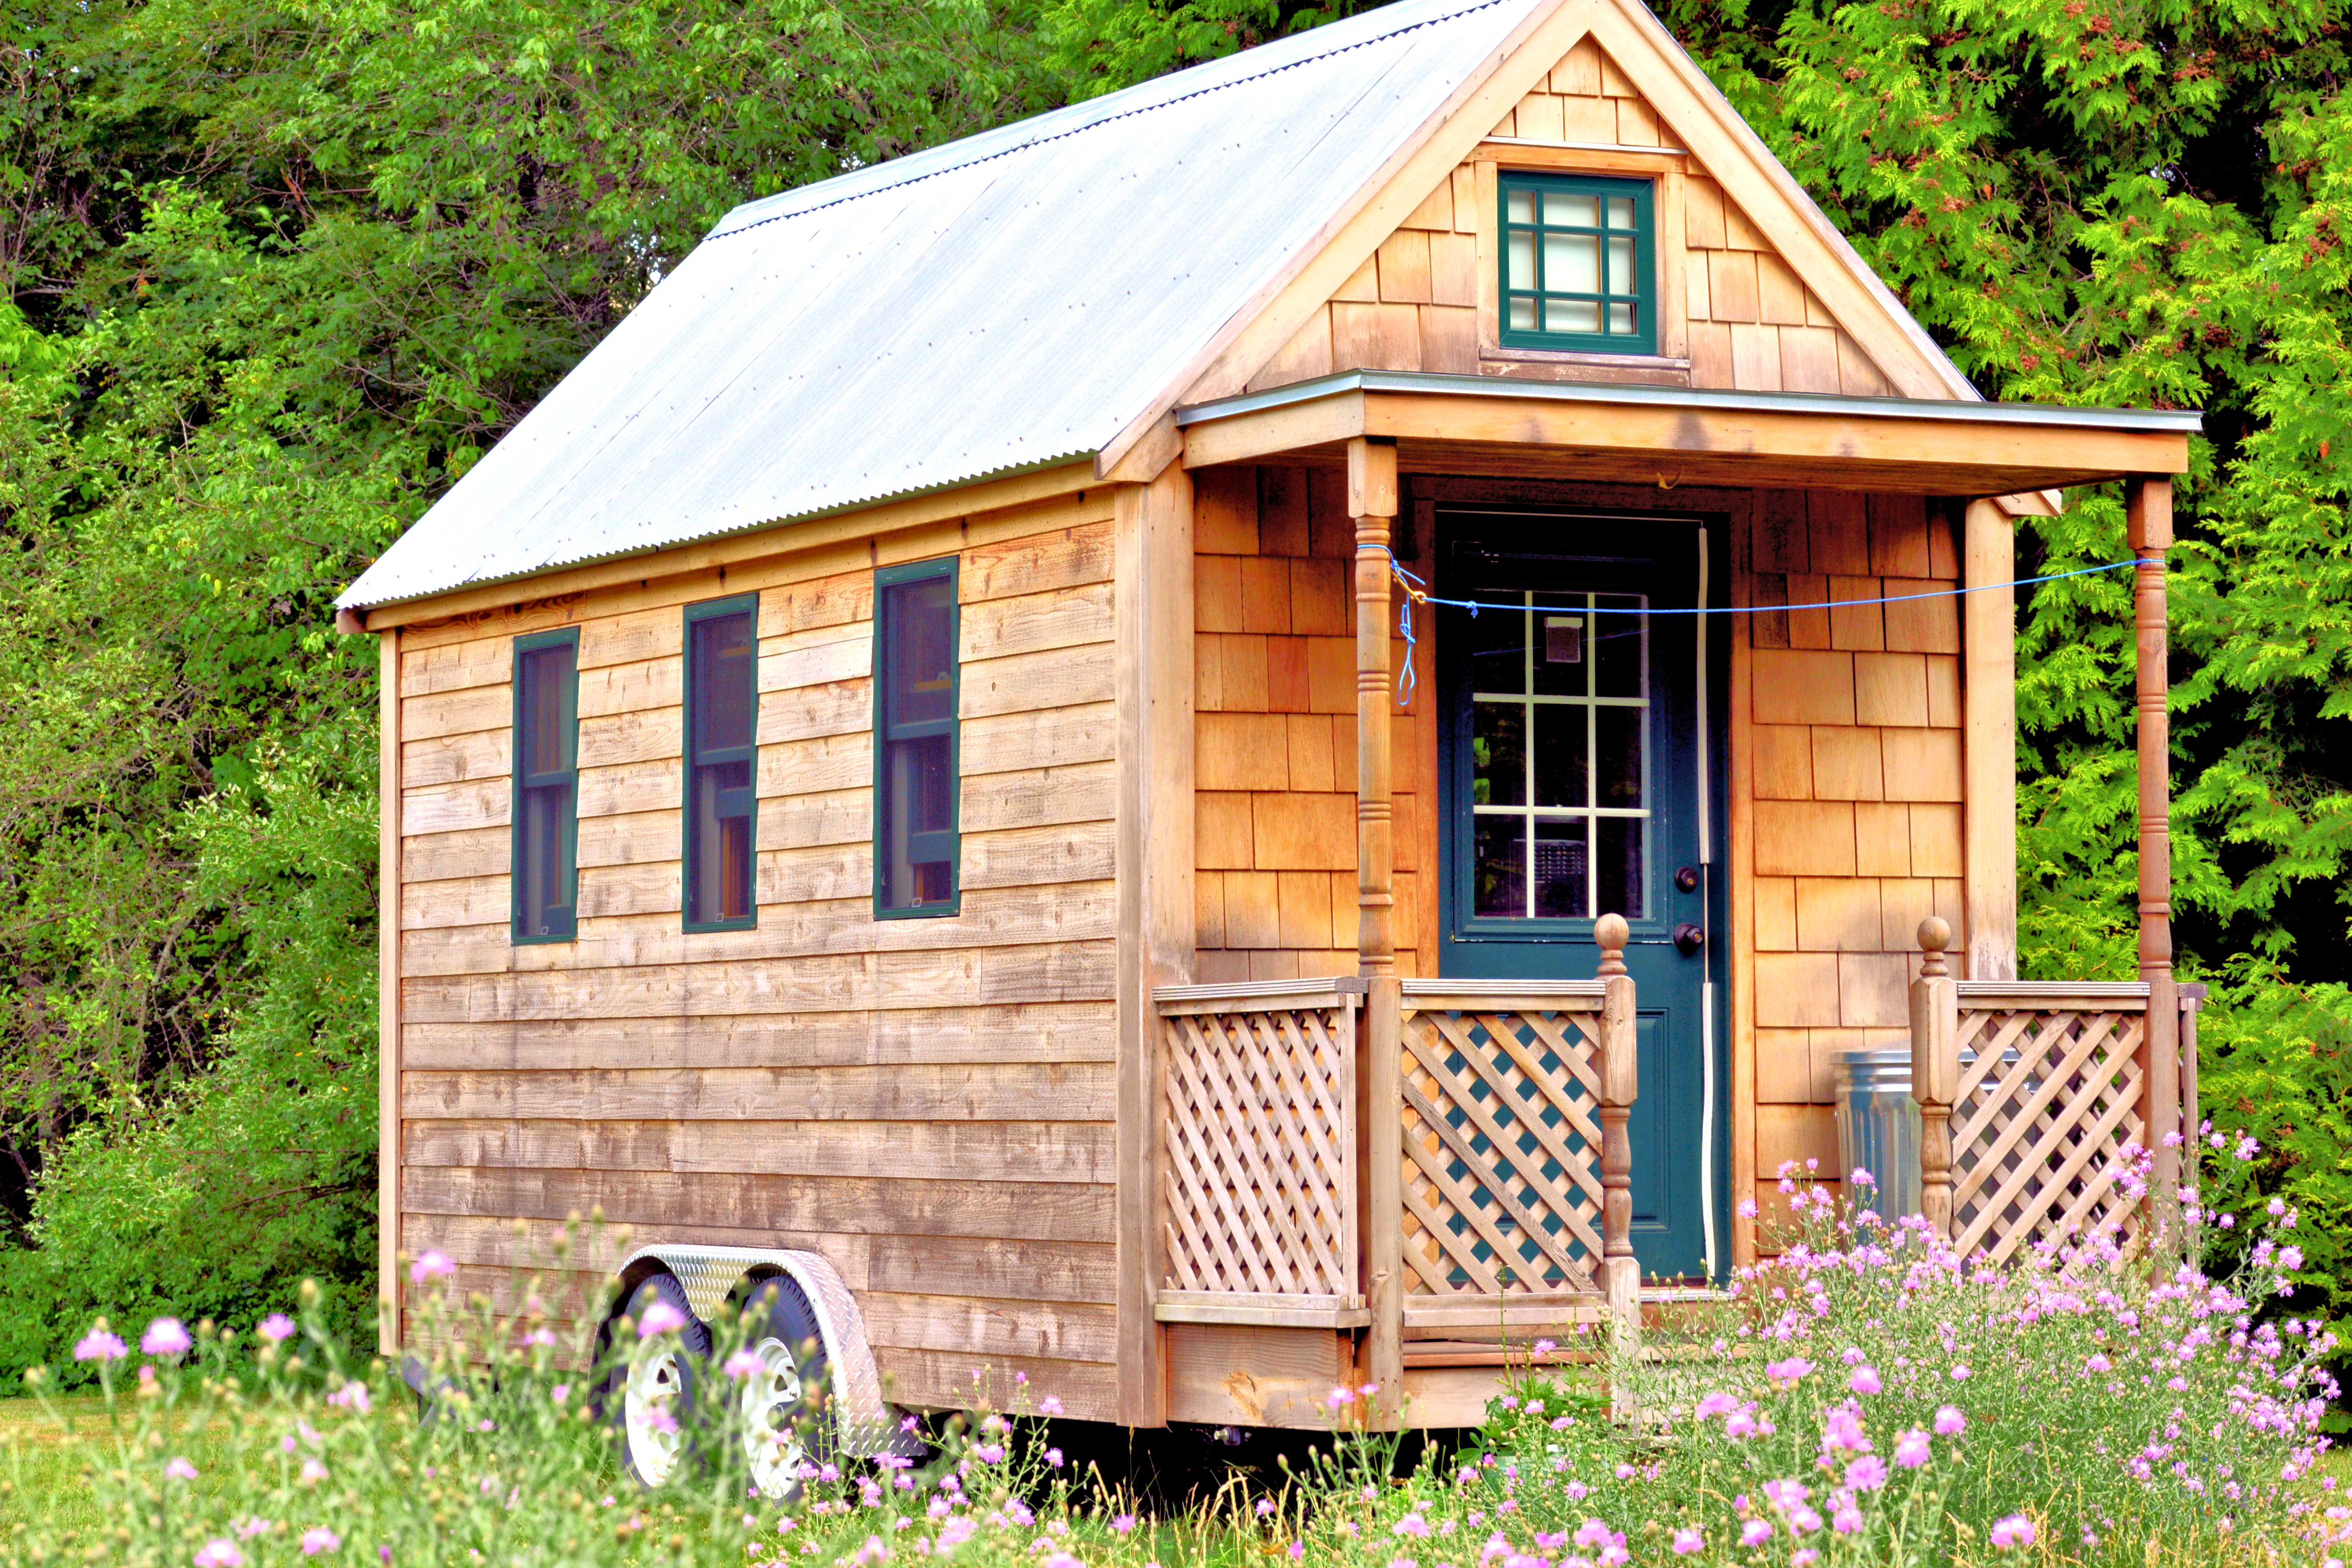 Wooden pitch-roofed tiny house with porch on a verdant site.